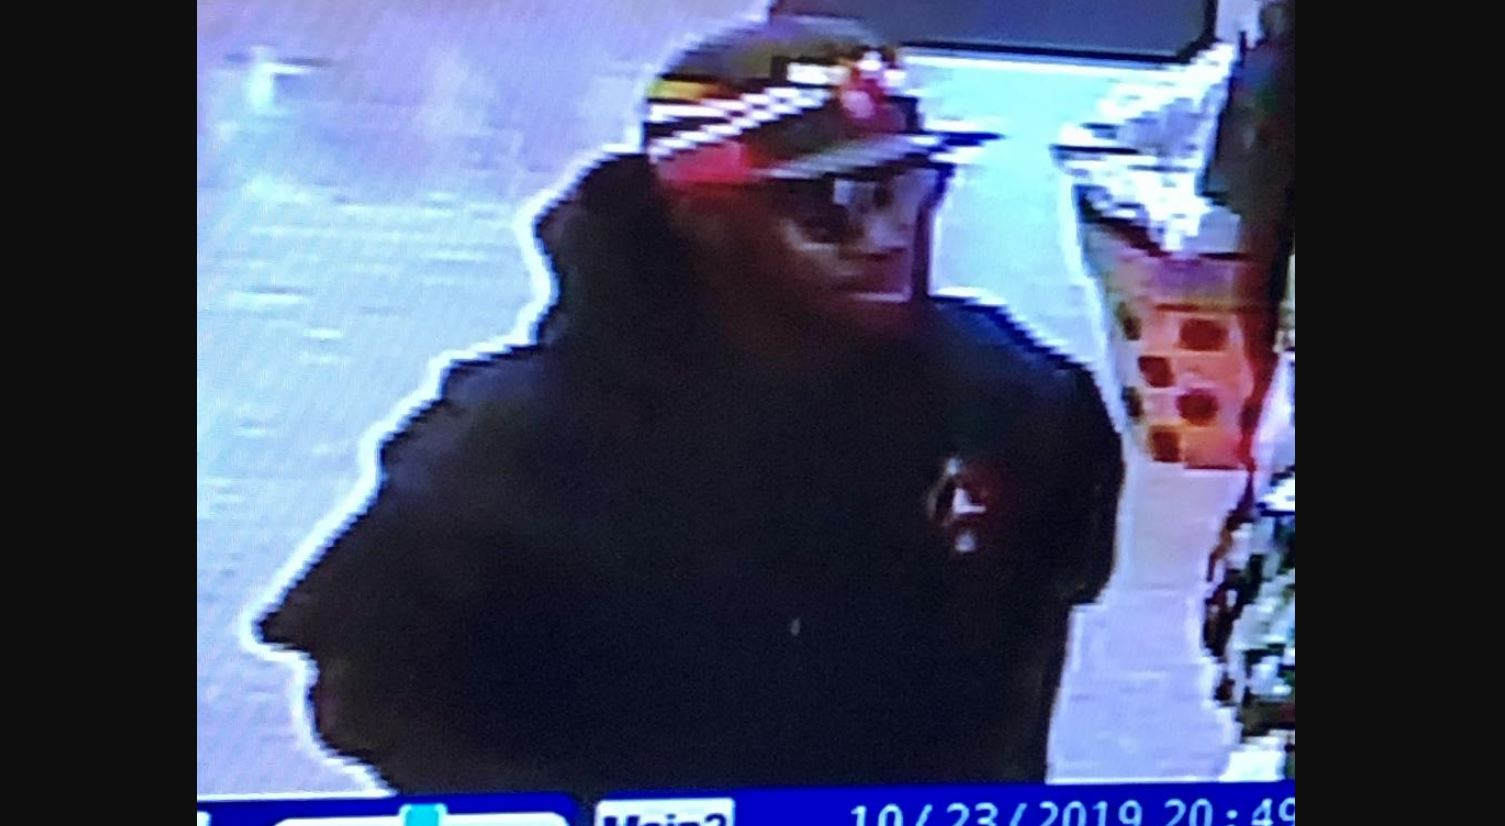 Man wanted in connection to Odenville Drugs robbery